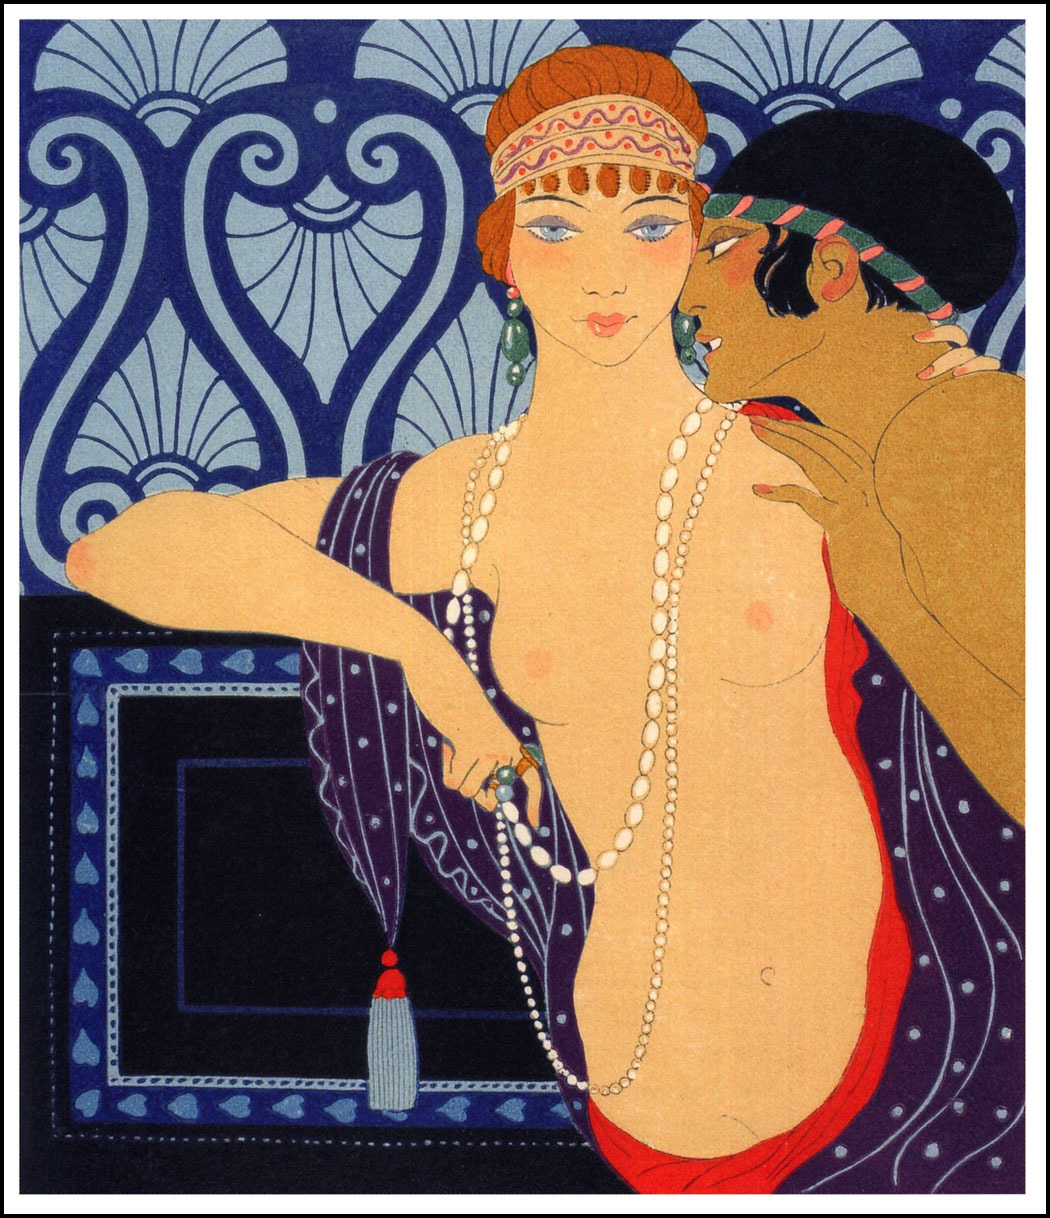 Les Chansons de Bilitis 6 Illustration by Georges Barbier